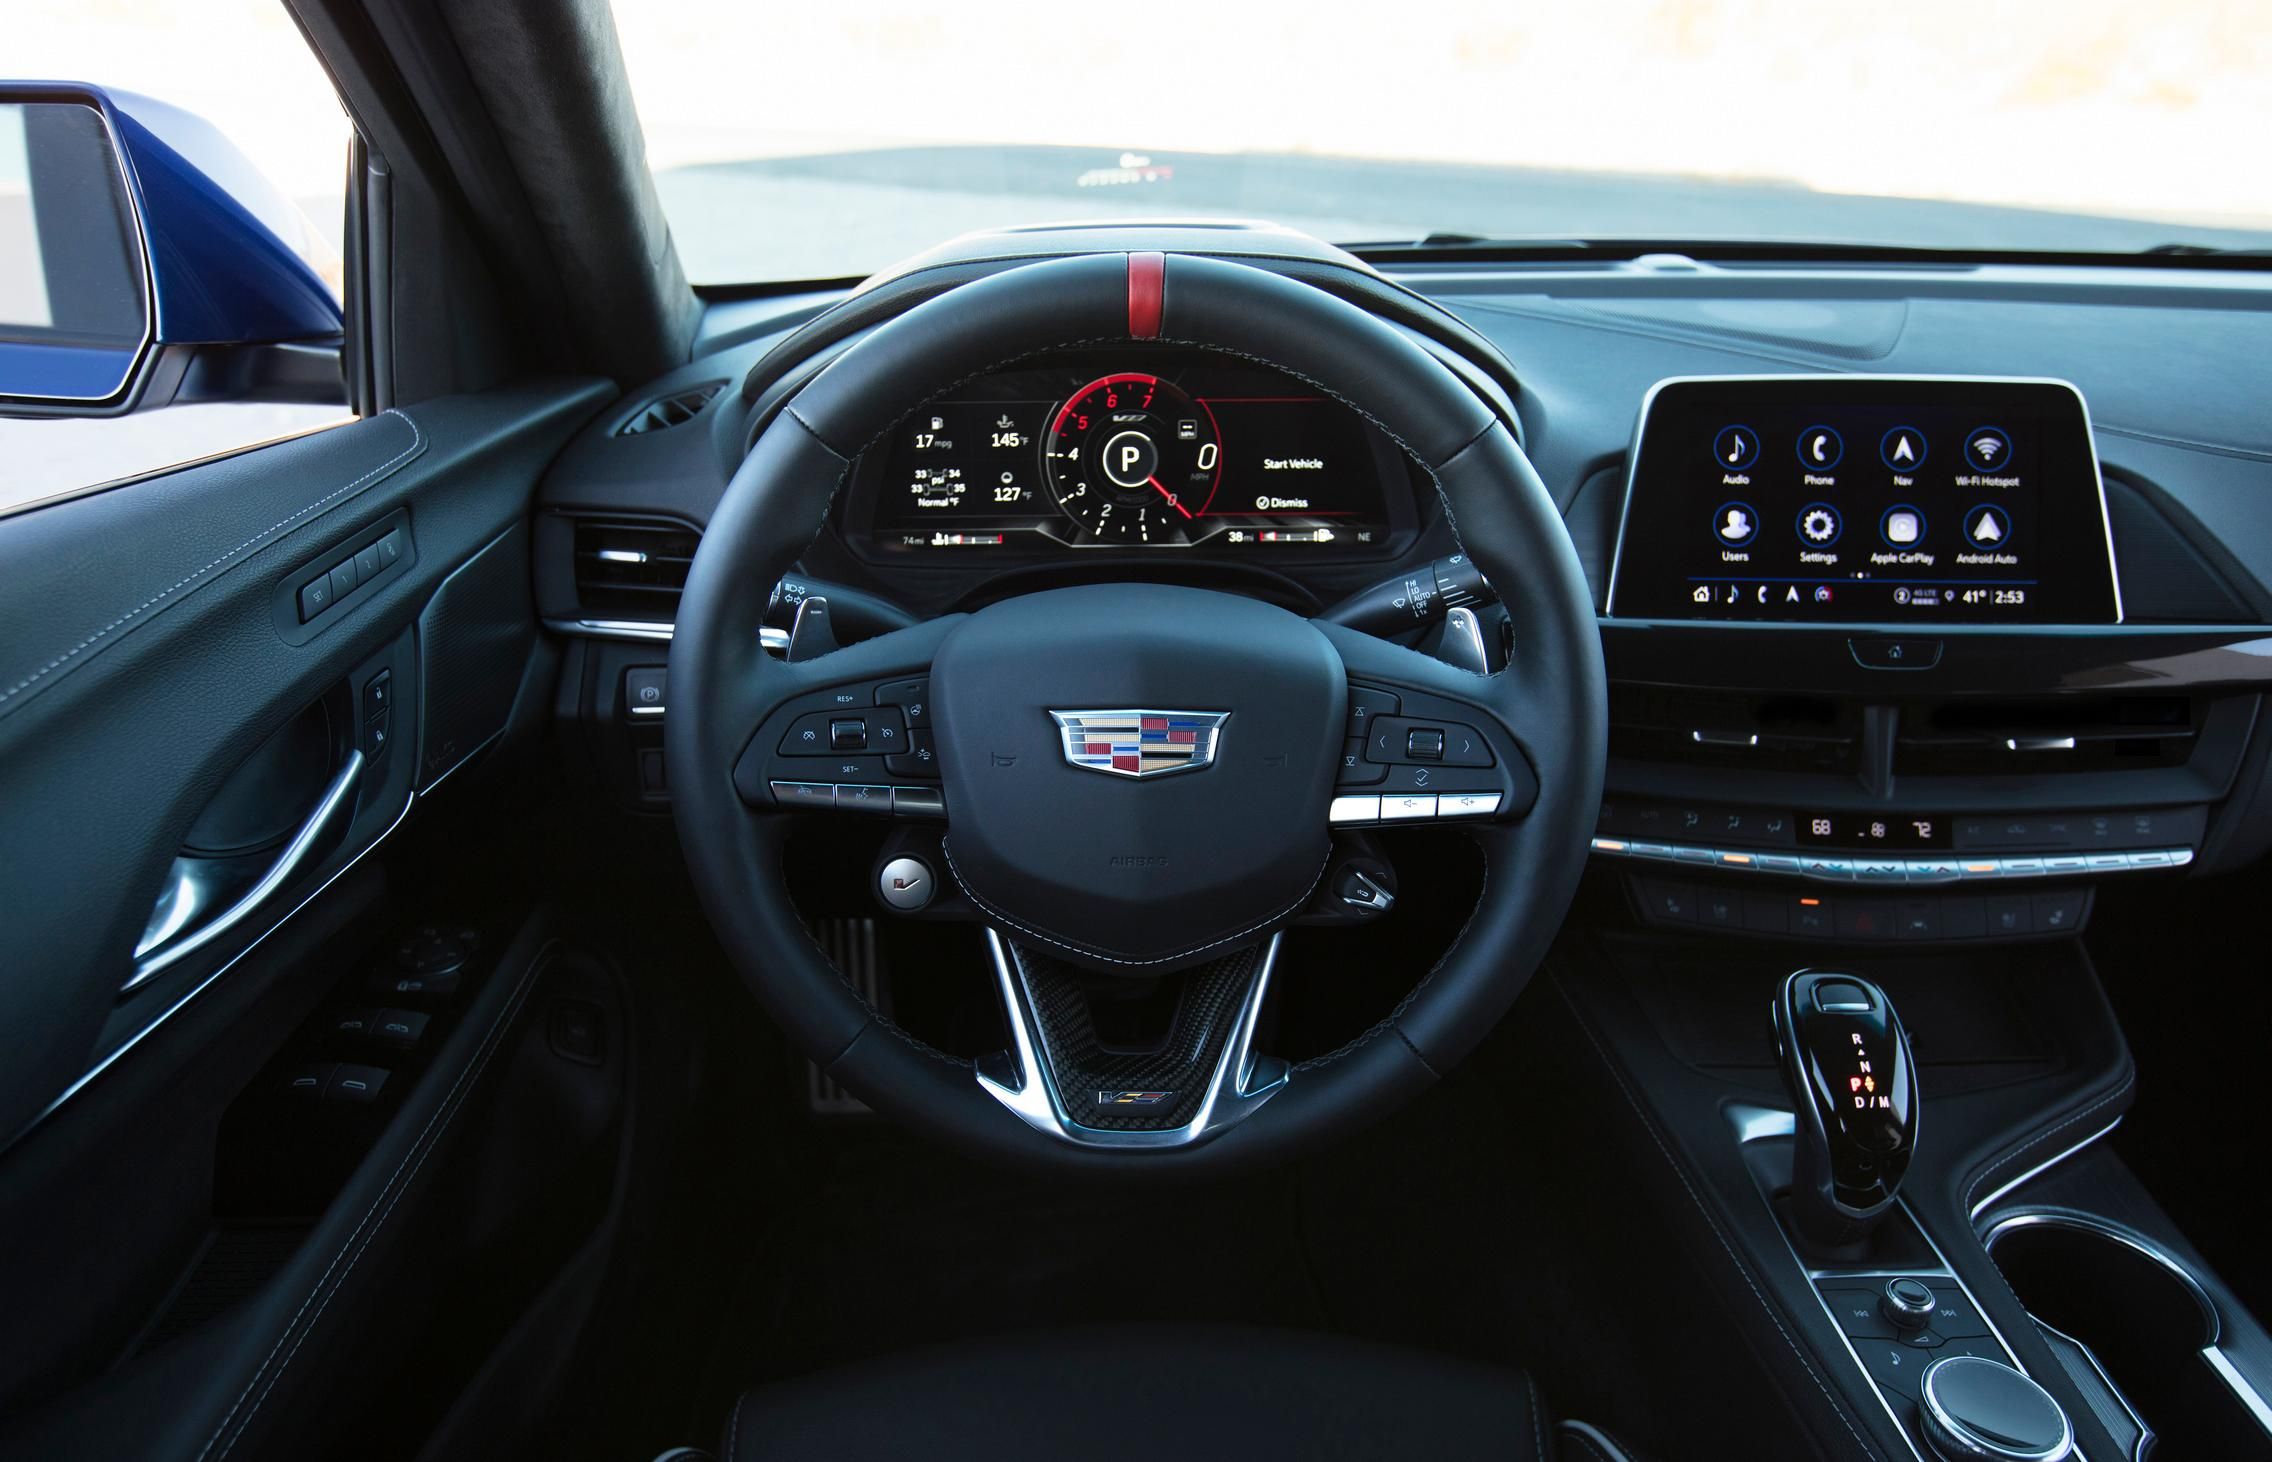 2022 Cadillac CT4-V Blackwing steering wheel